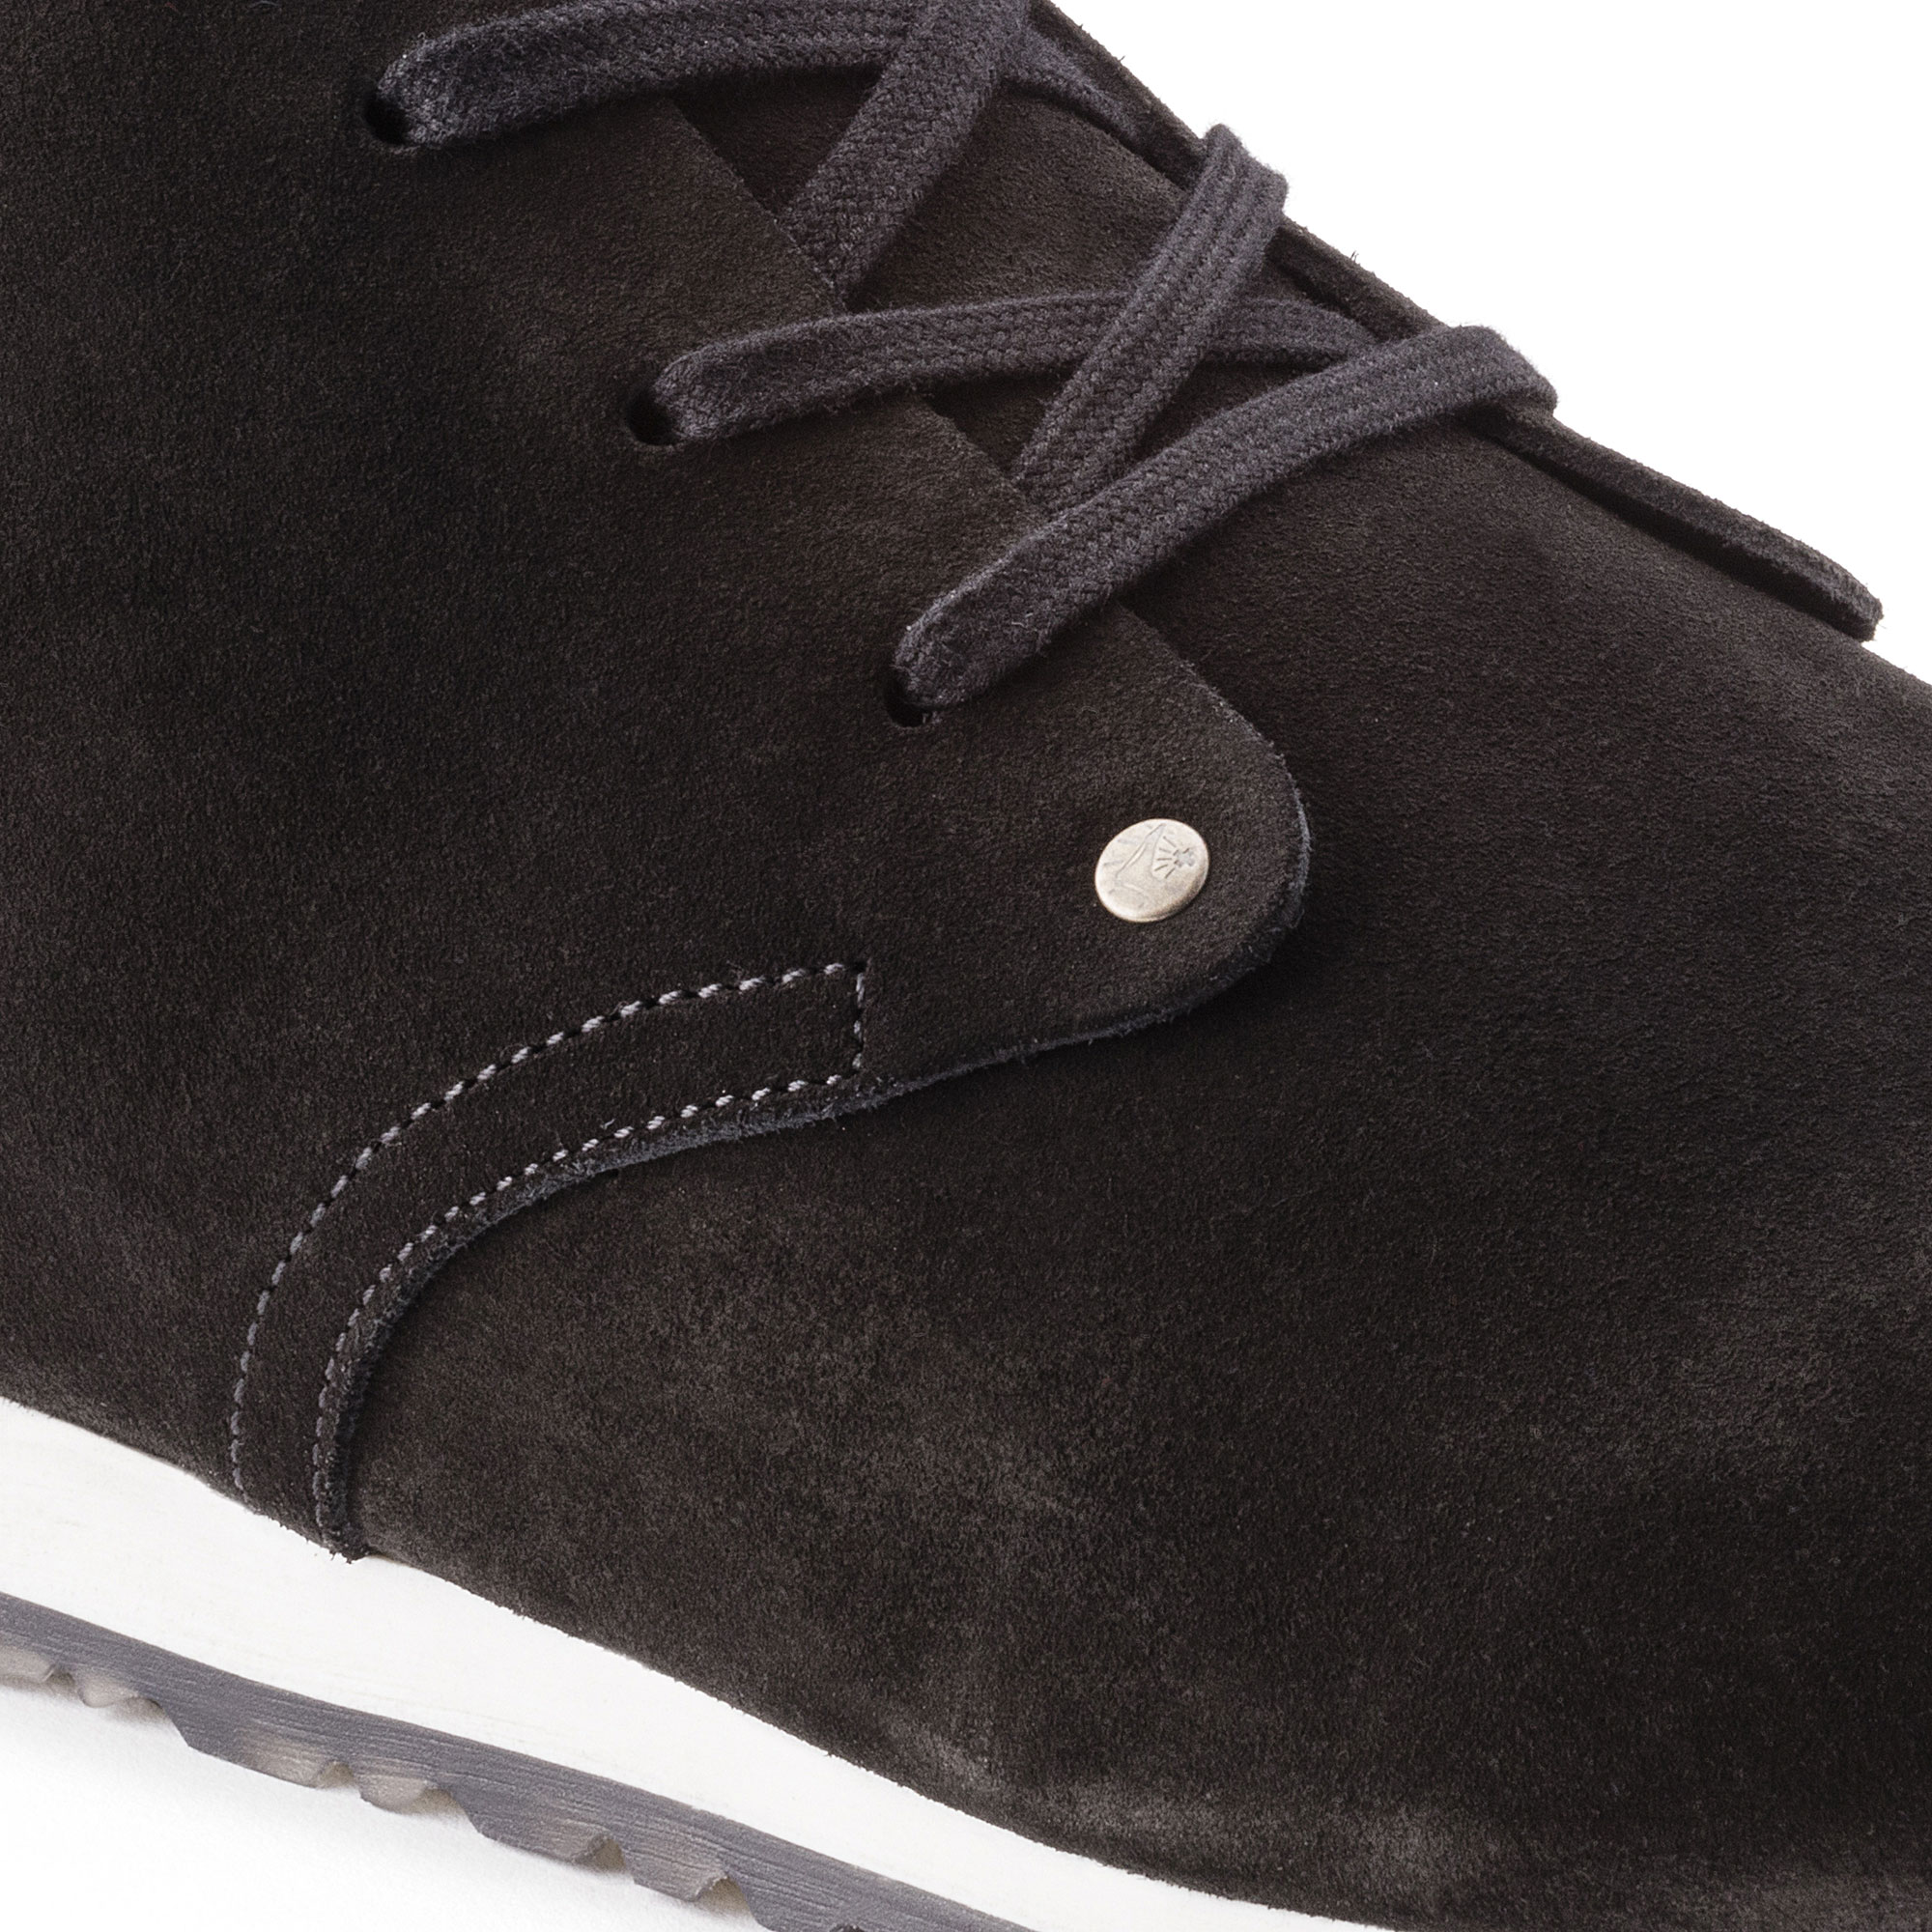 Dundee Suede Leather Black · Dundee Suede Leather Black ... 560d0d0338e